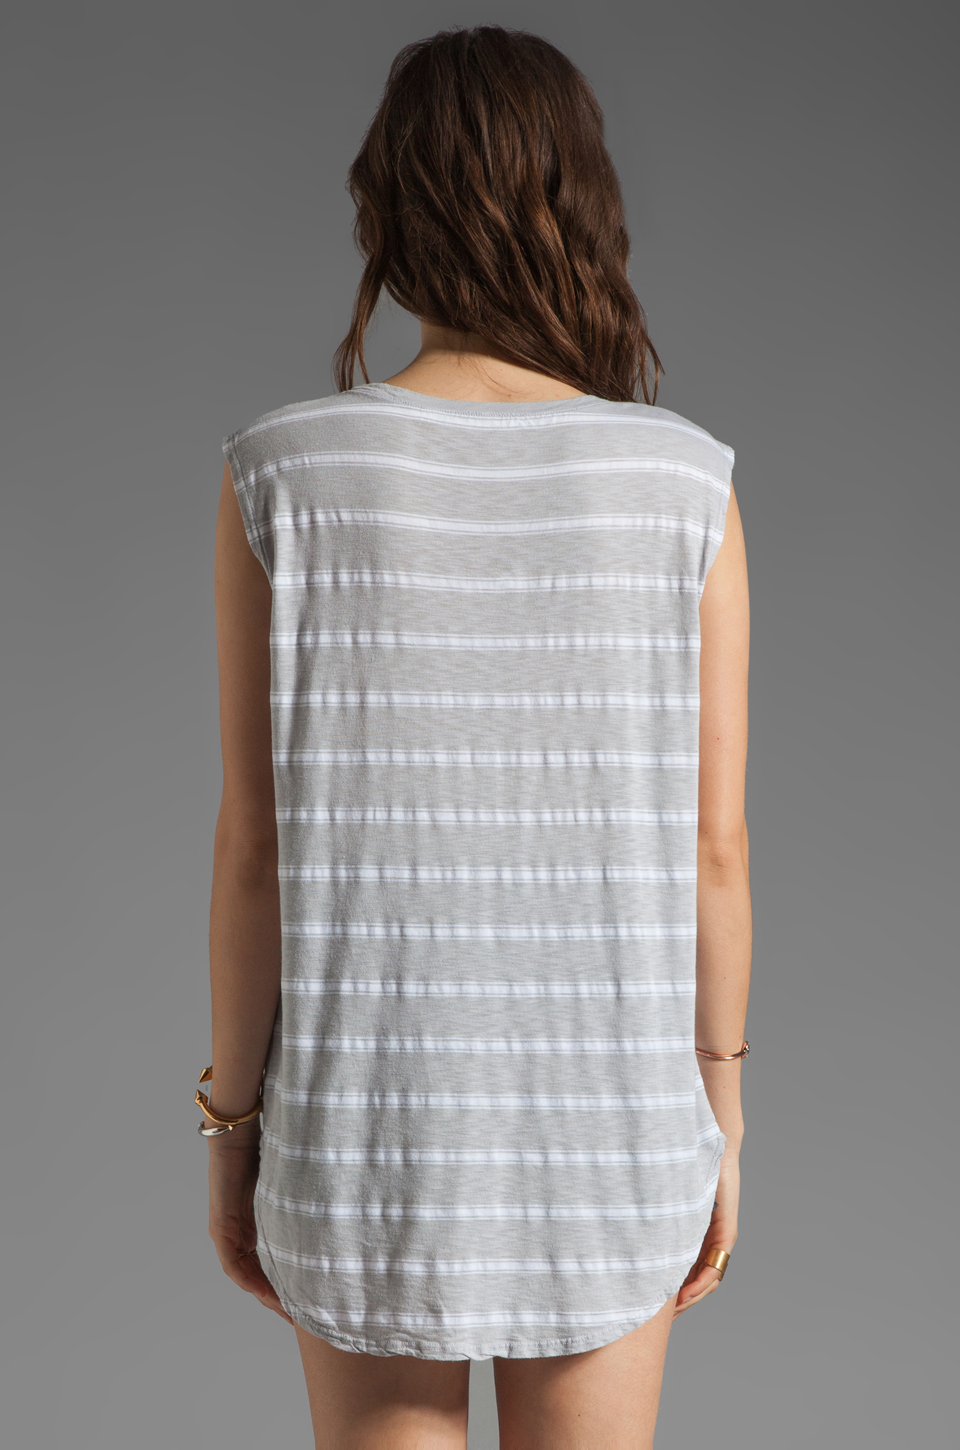 Michael Stars Striped Muscle Tank in Chateau